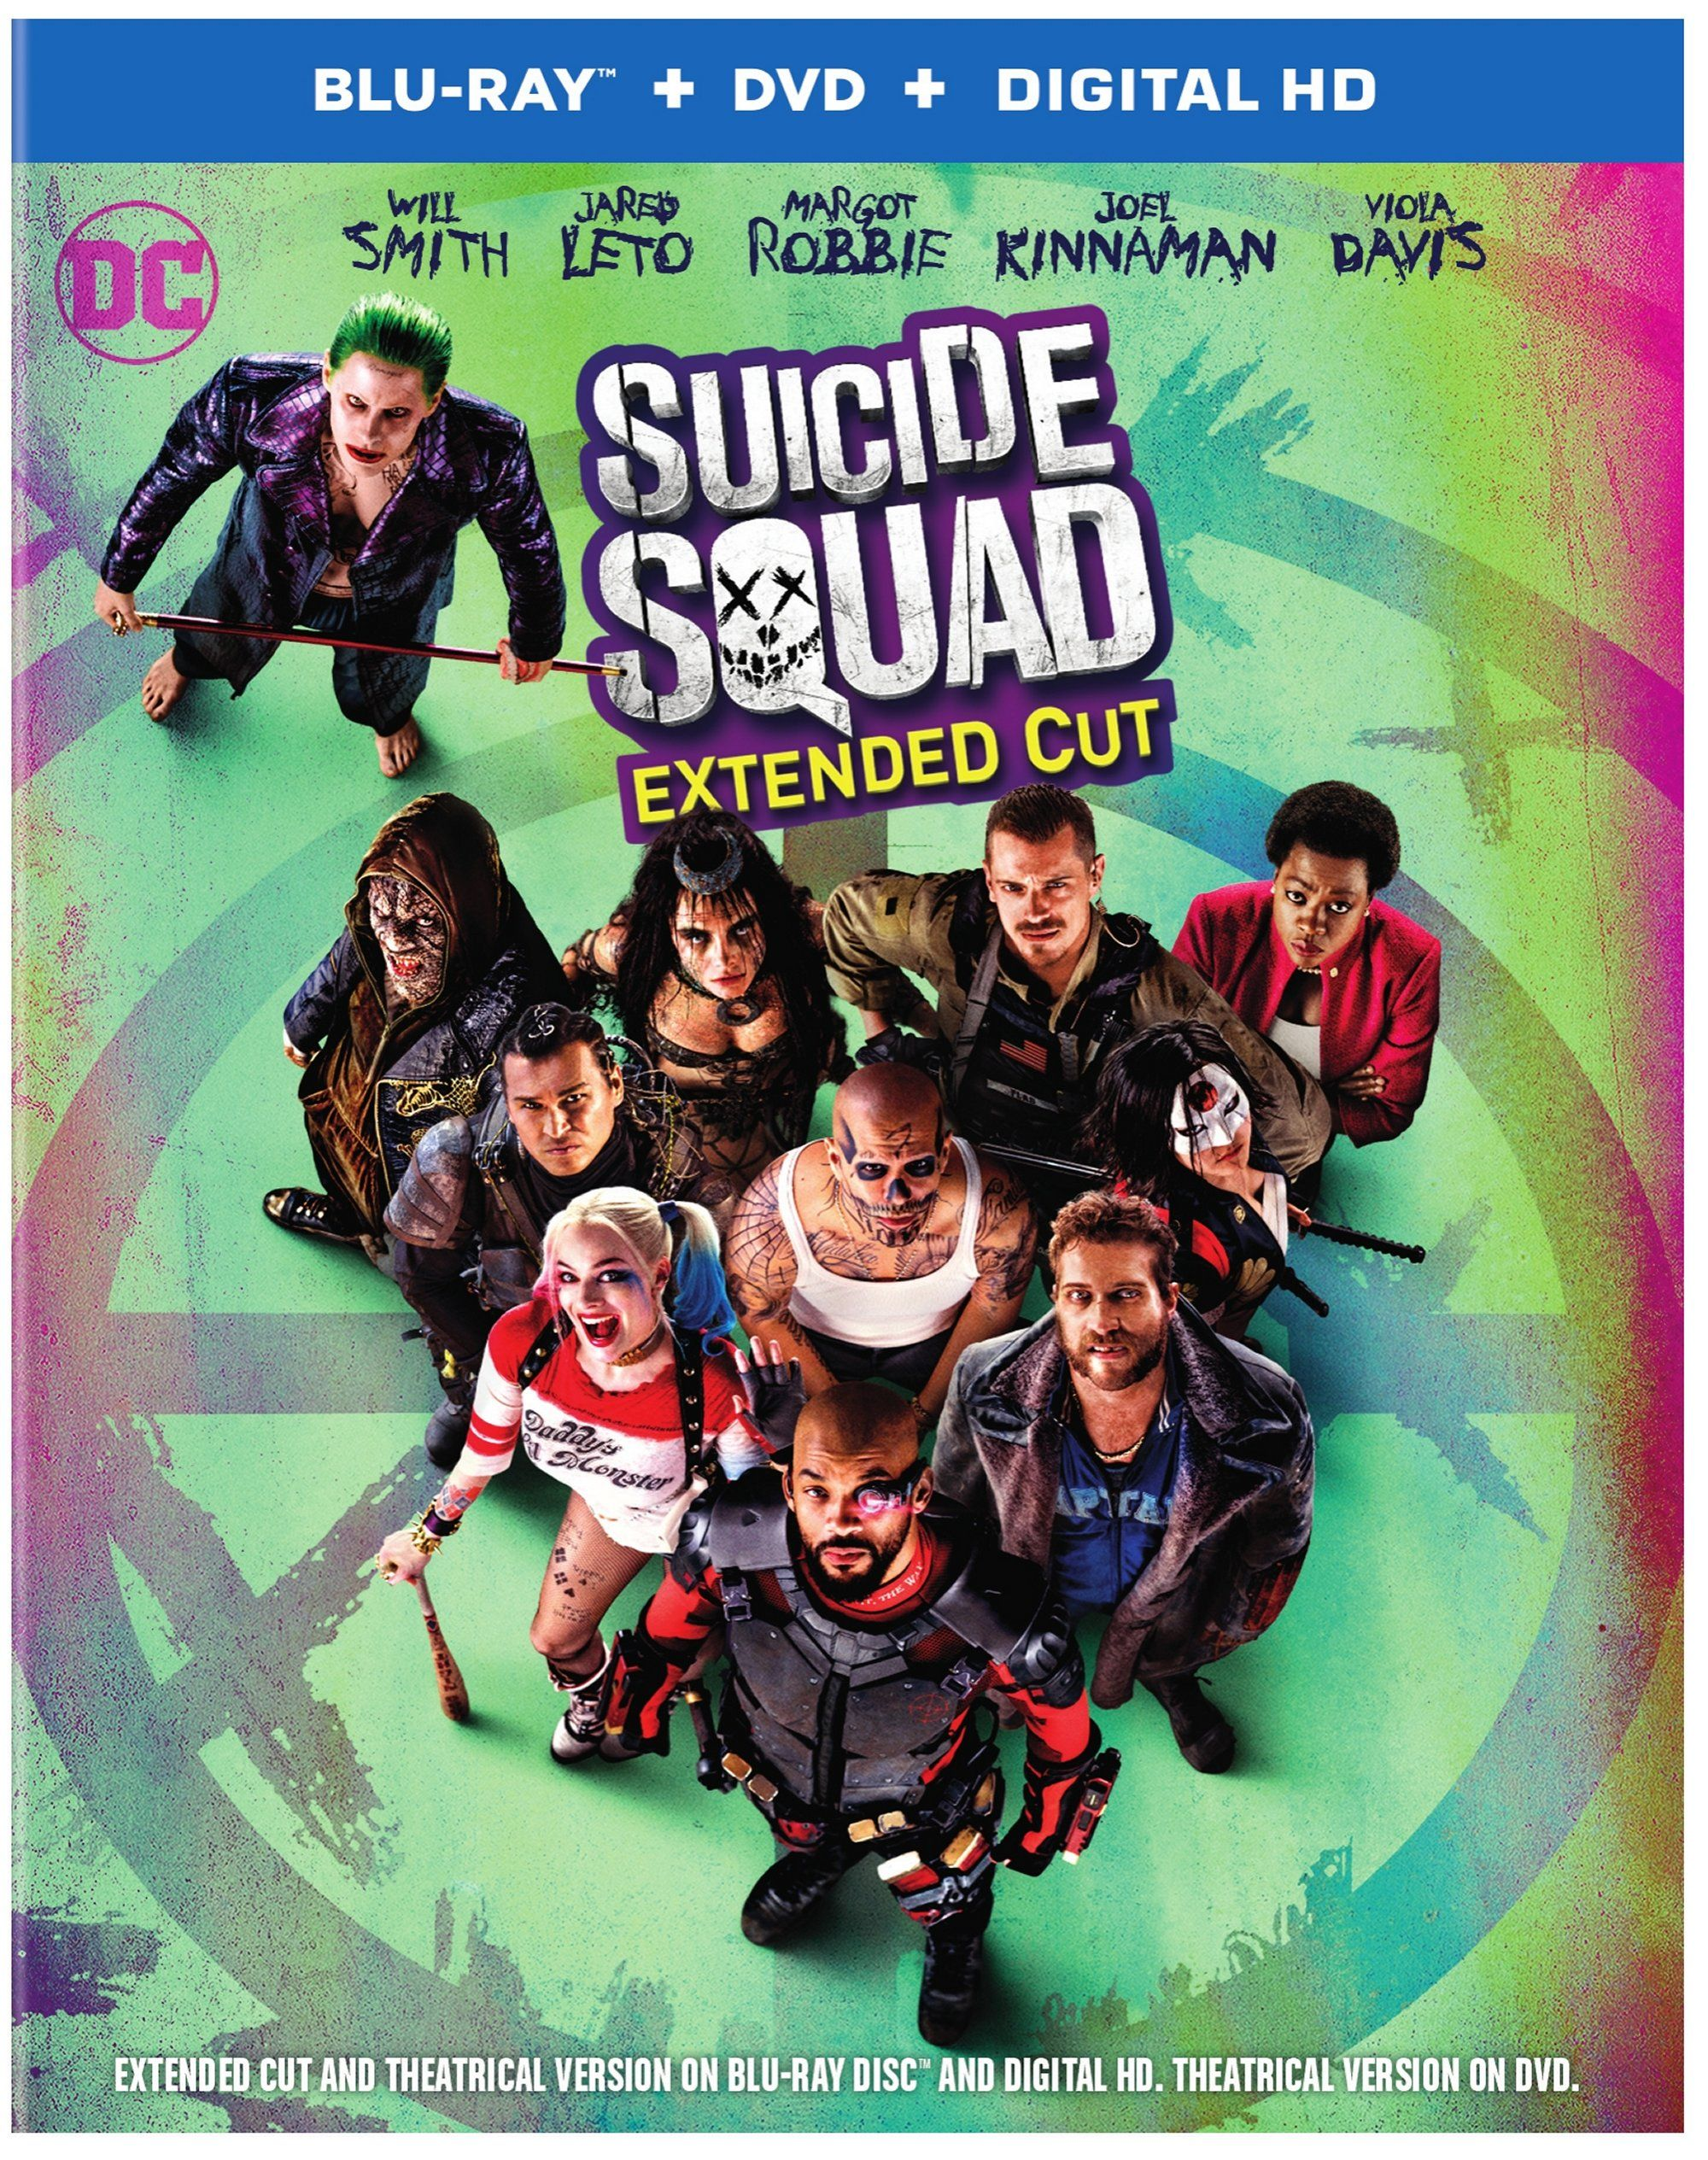 http://cdn.collider.com/wp-content/uploads/2016/10/suicide-squad-blu-ray-cover.jpeg